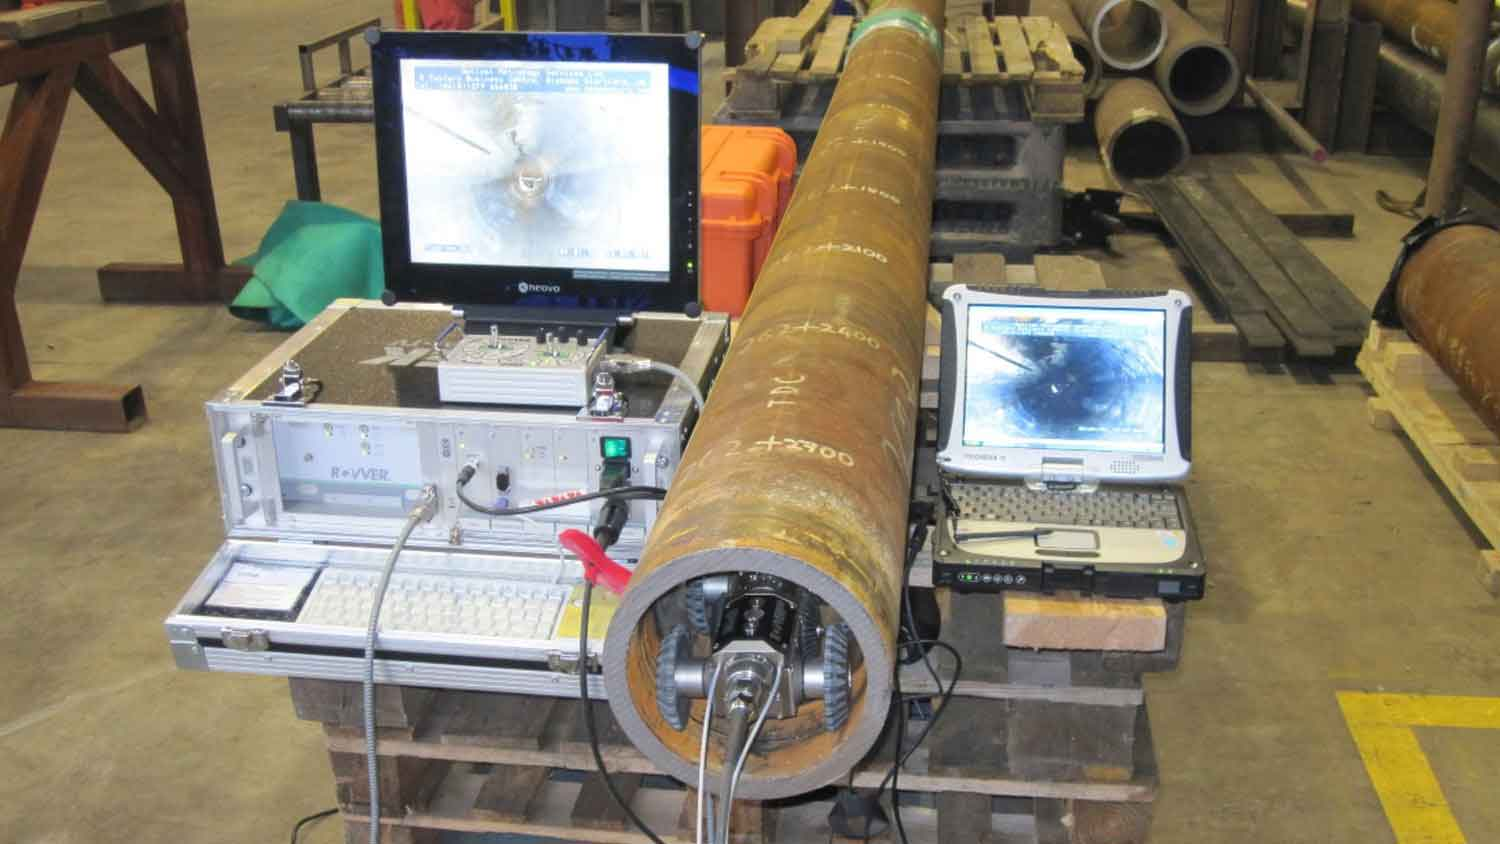 Visual pipe inspection using a robotic crawler